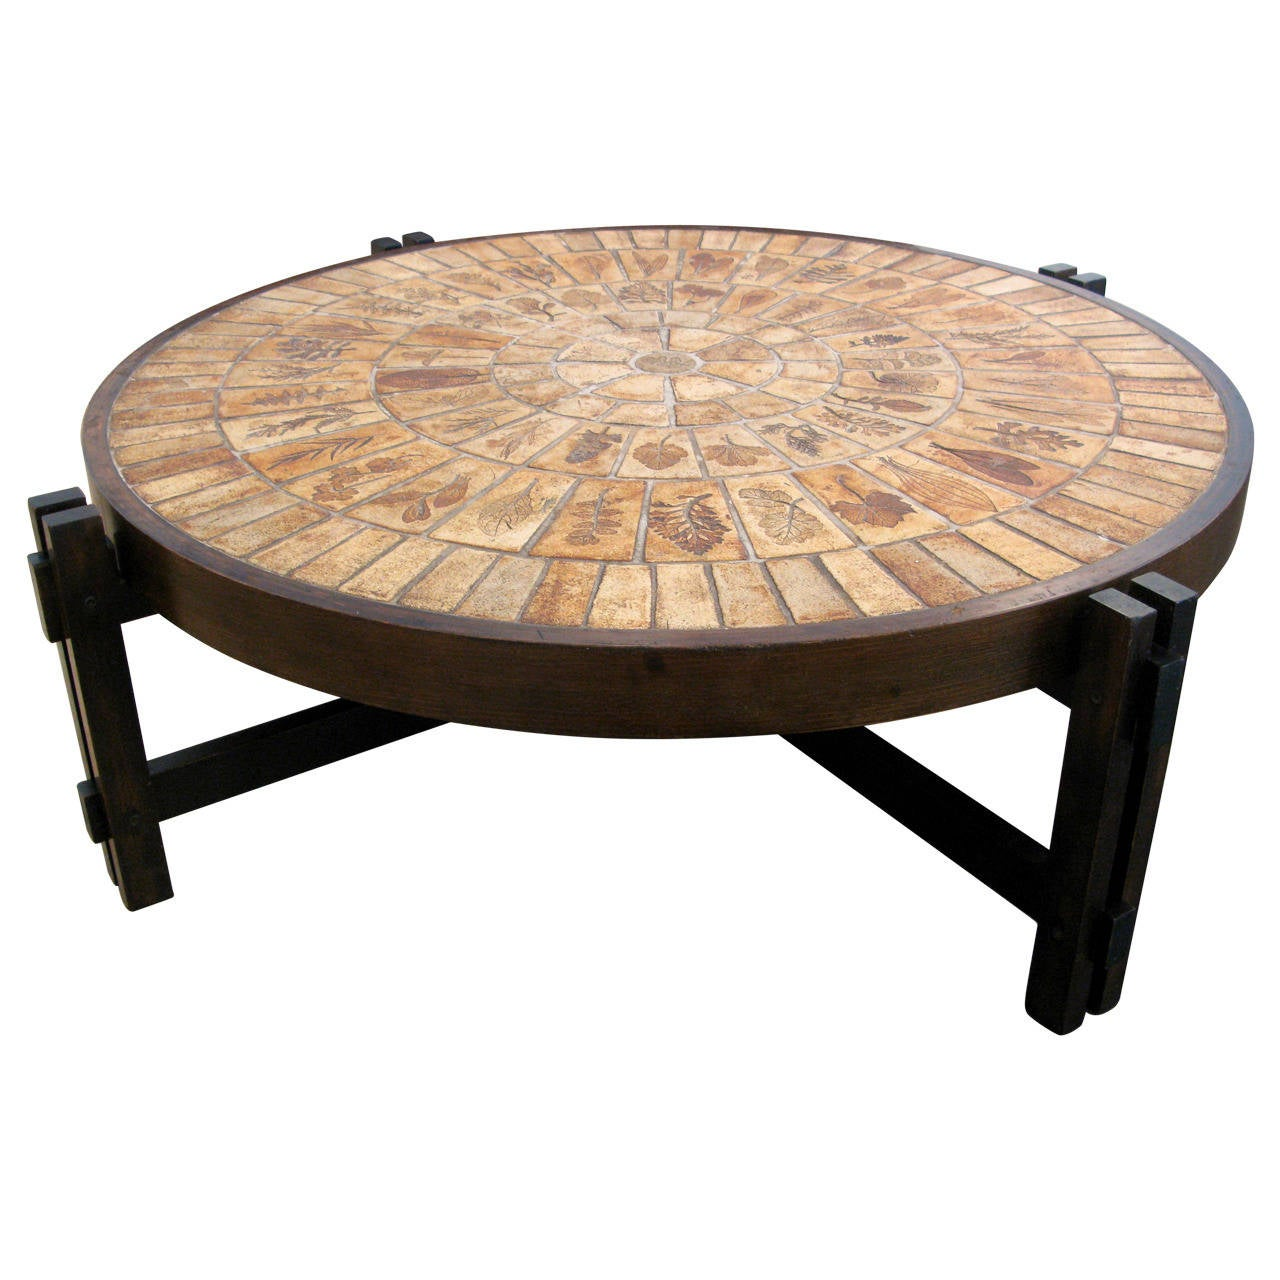 Original Coffee Table Original Roger Capron Coffee Table At 1stdibs